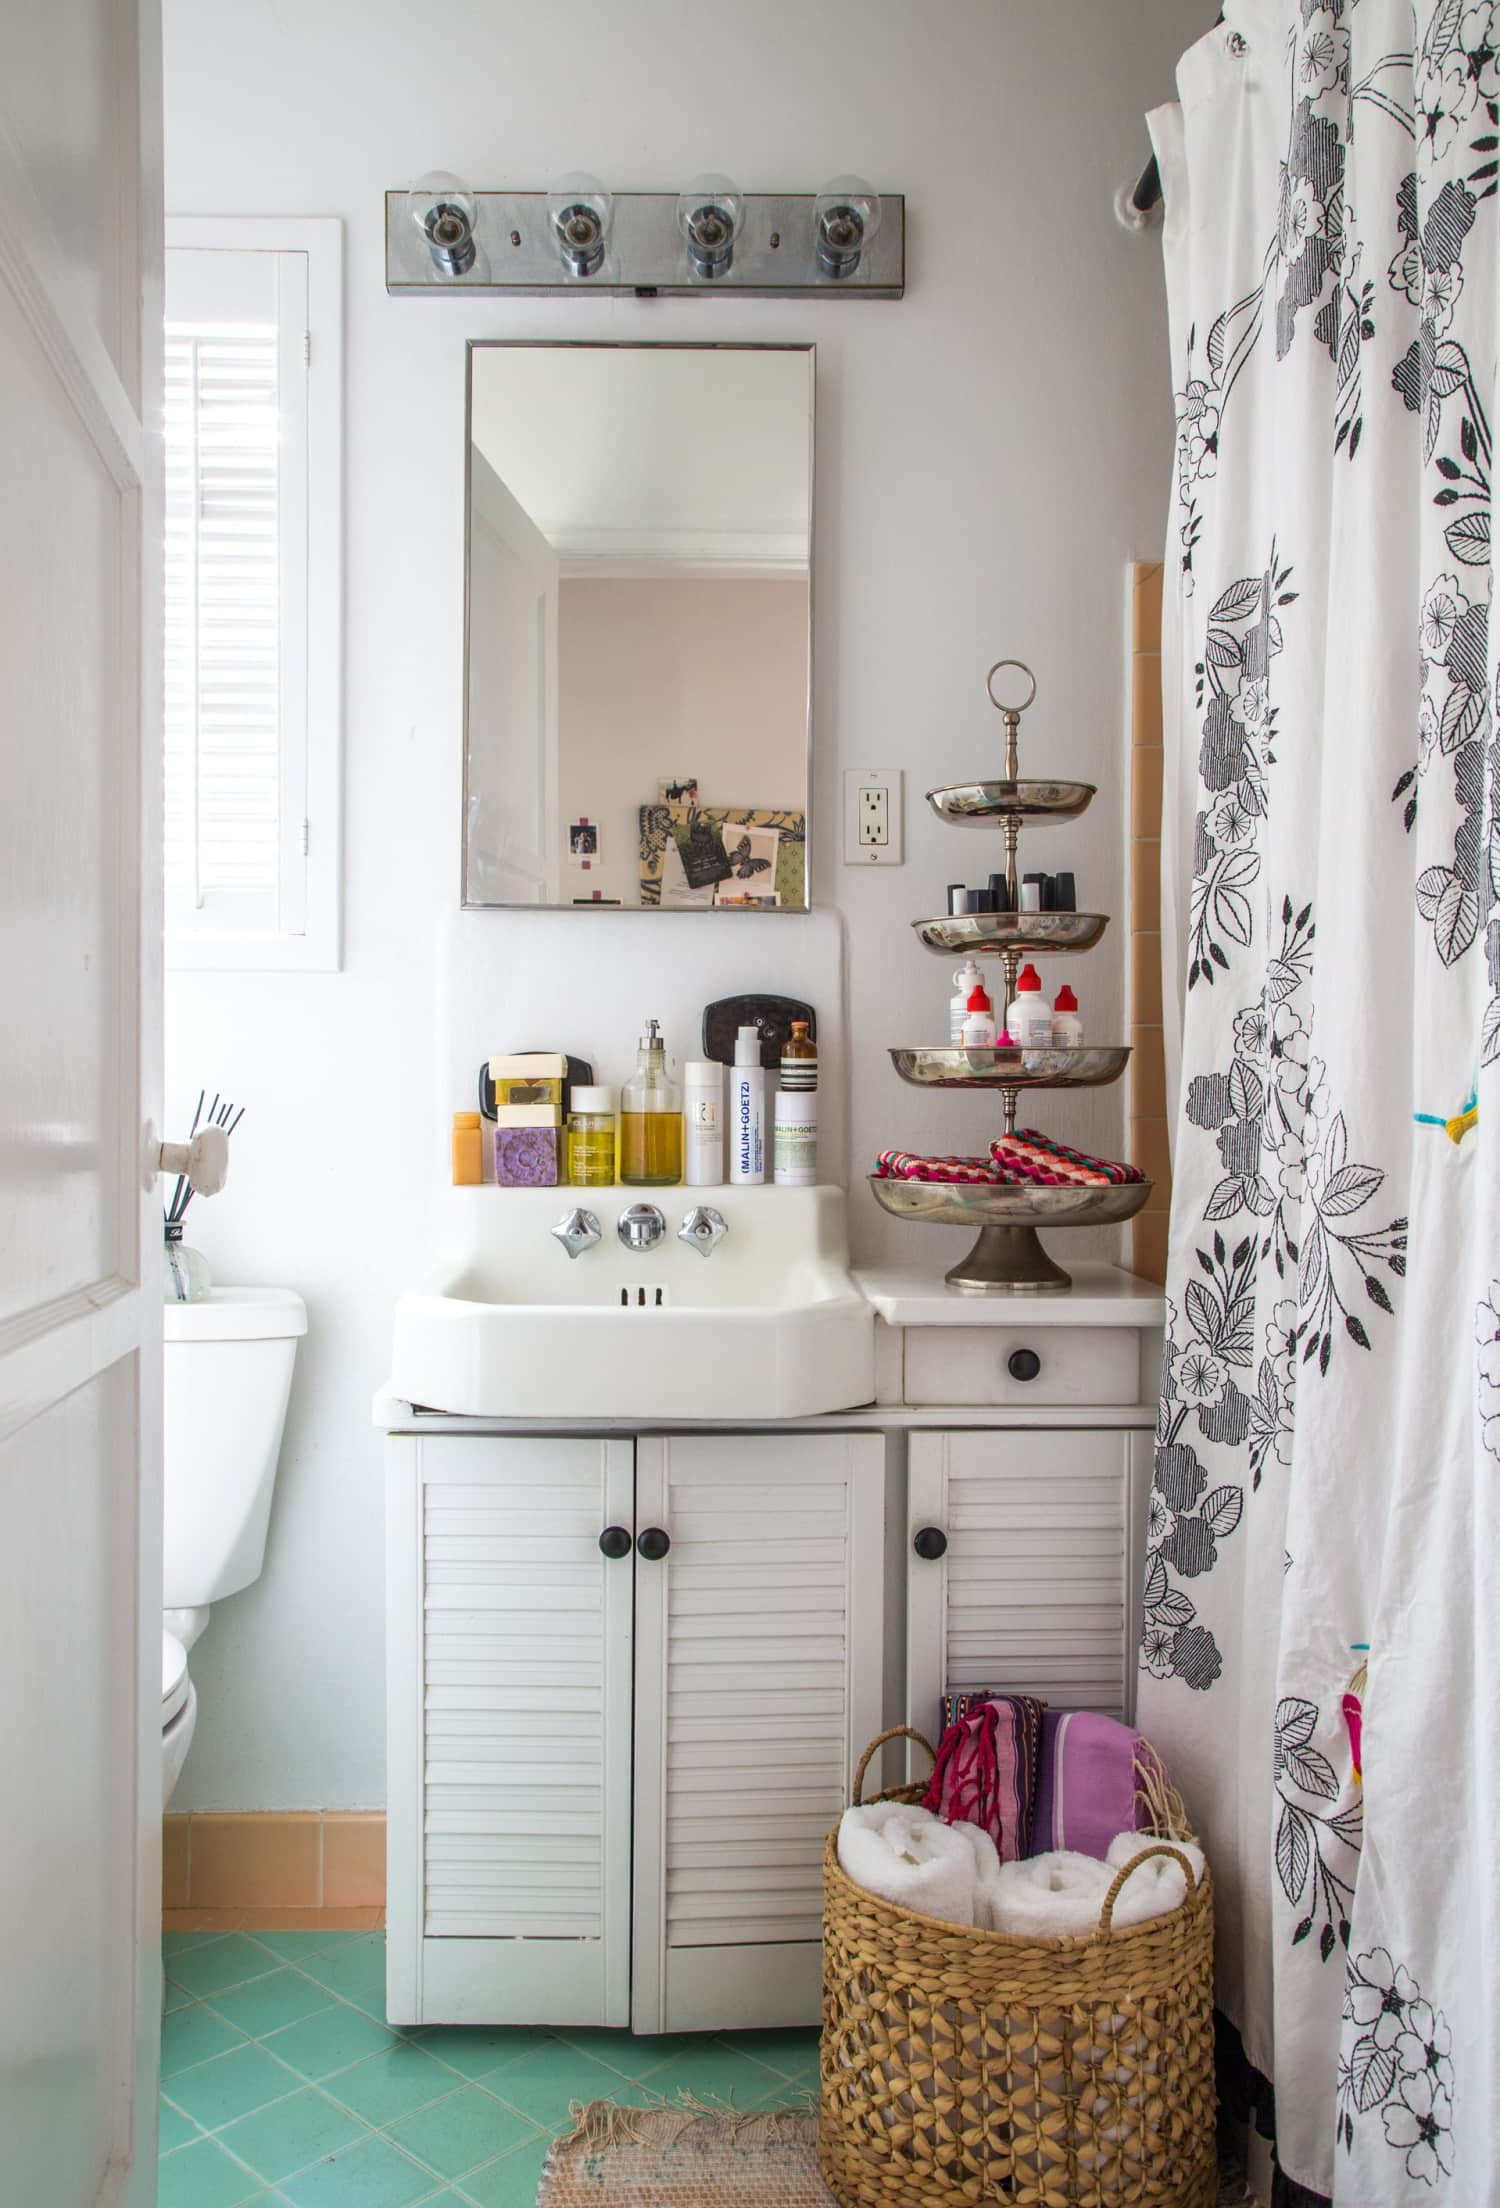 7 Clever Ways to Add Storage to a Small Bathroom ... on Bathroom Ideas For Apartments  id=20188